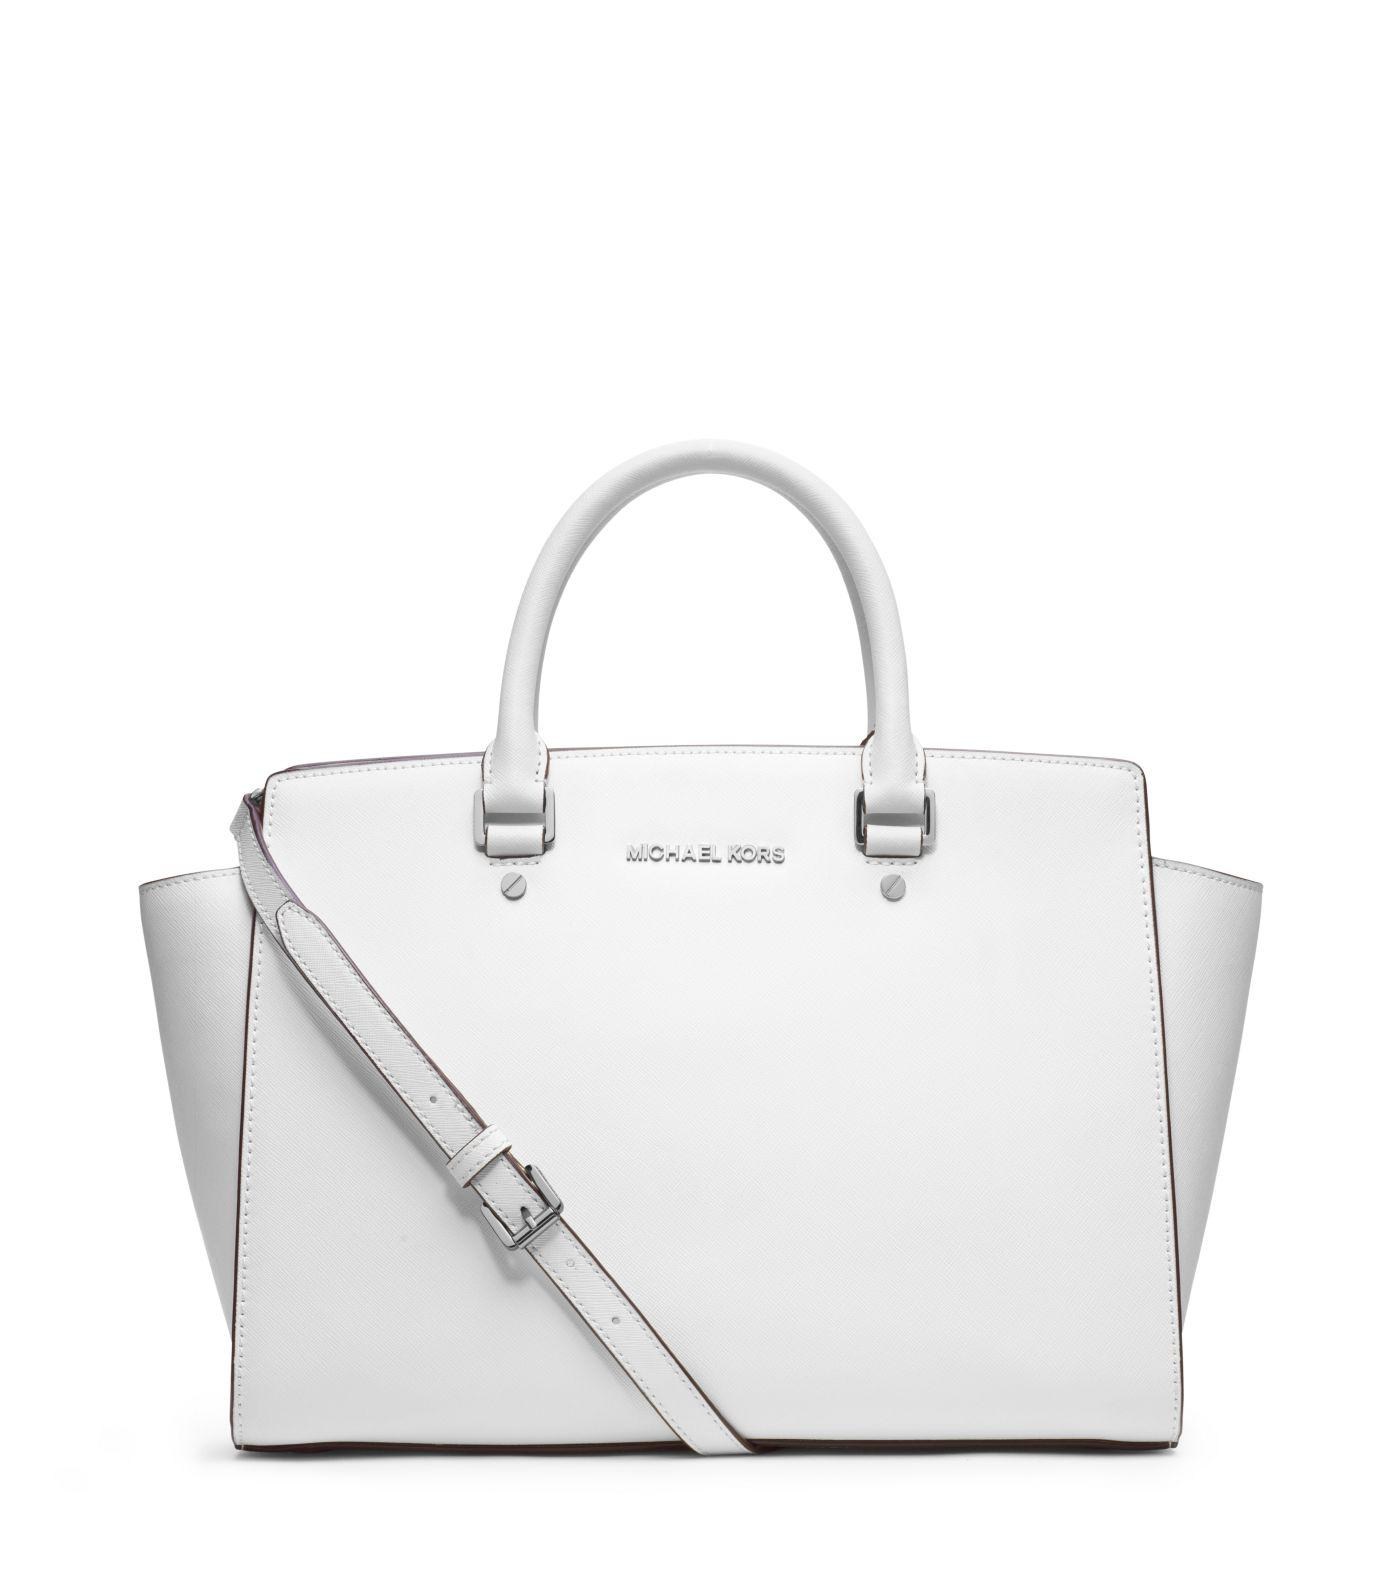 c9293d3347b255 ... get michael kors selma large saffiano leather satchel in white lyst  d1bb2 f2388